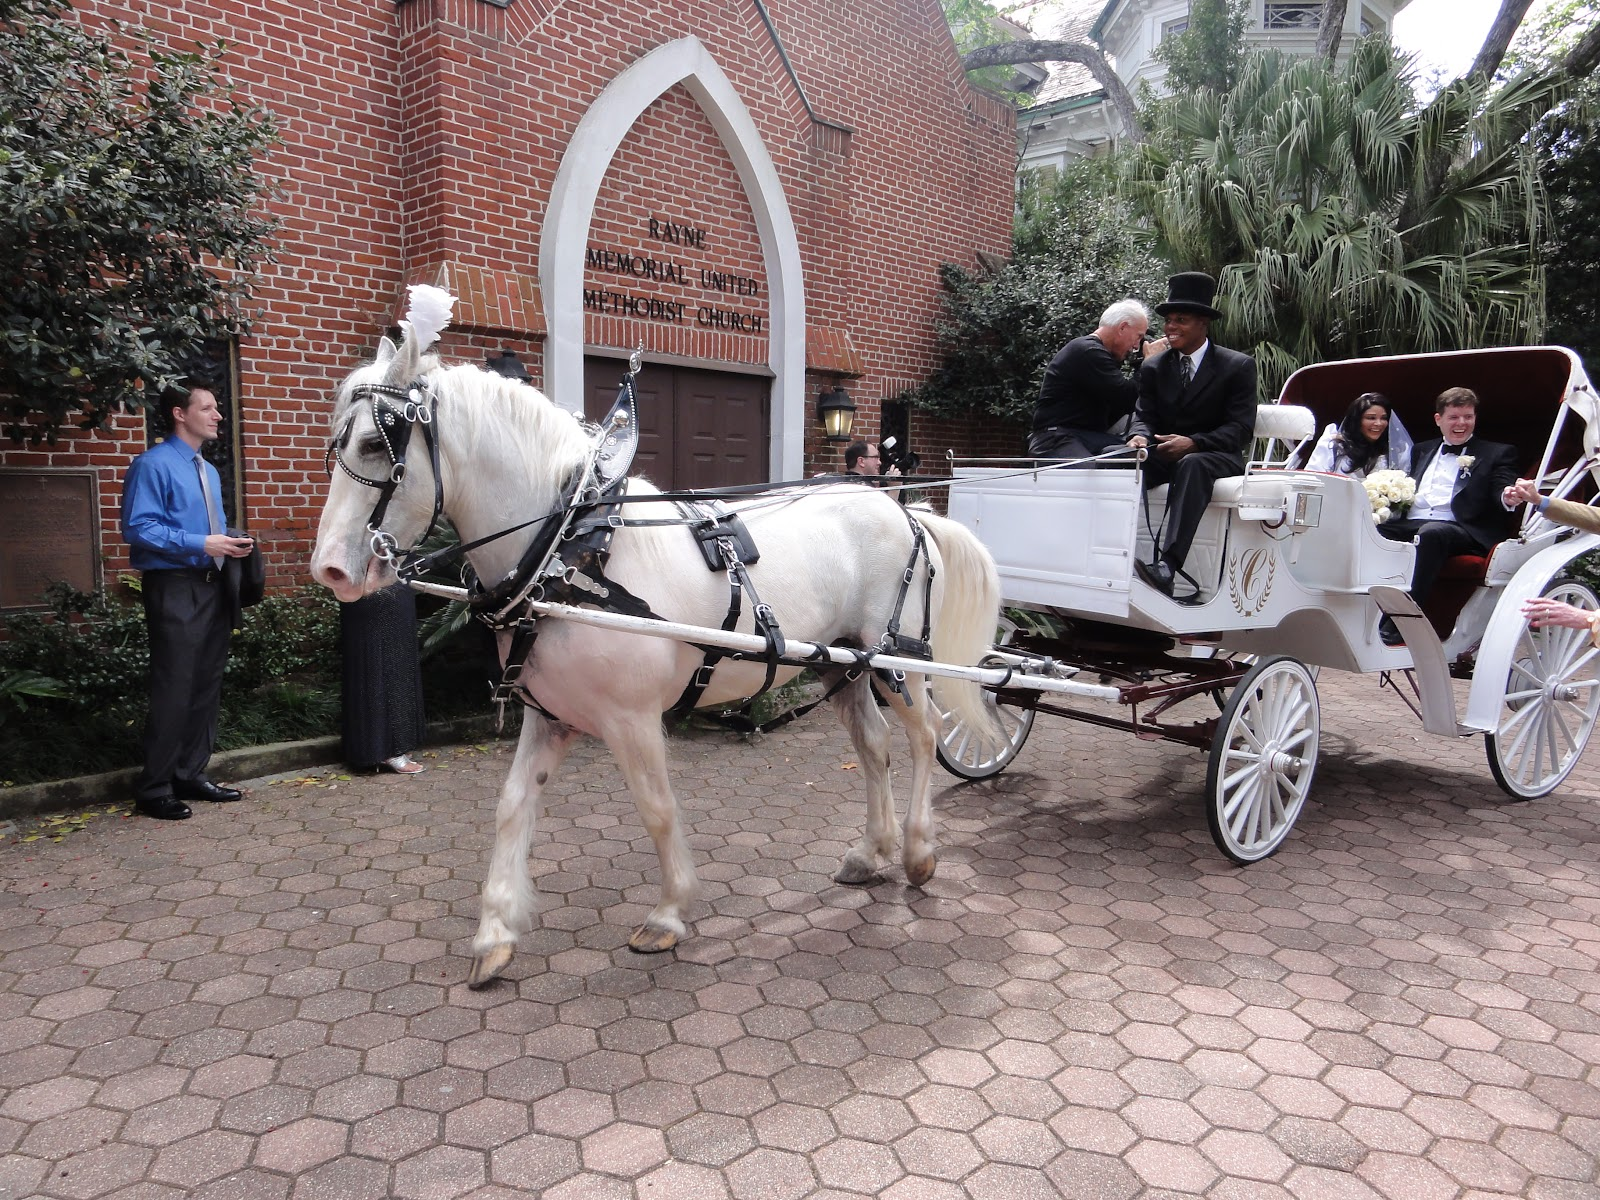 Horse_Drawn_Wedding_Carriage_New_Orleans.jpg